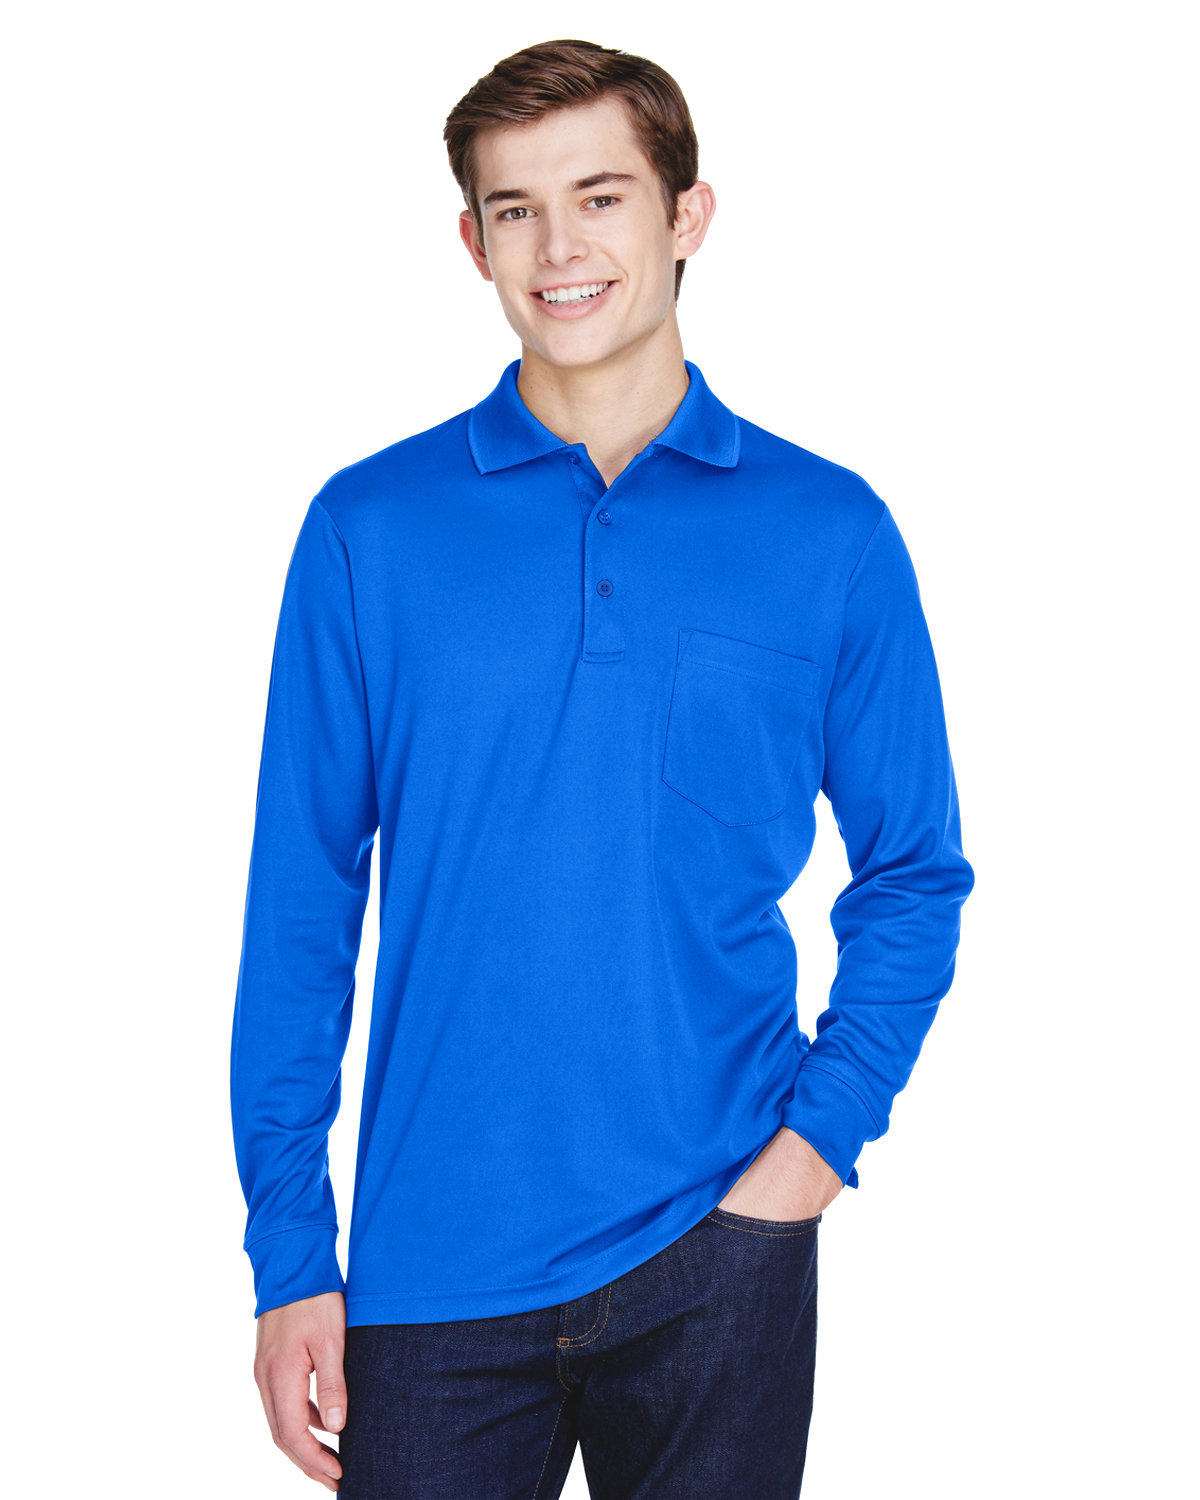 Core 365 Adult Pinnacle Performance Long-Sleeve Piqué Polo with Pocket TRUE ROYAL